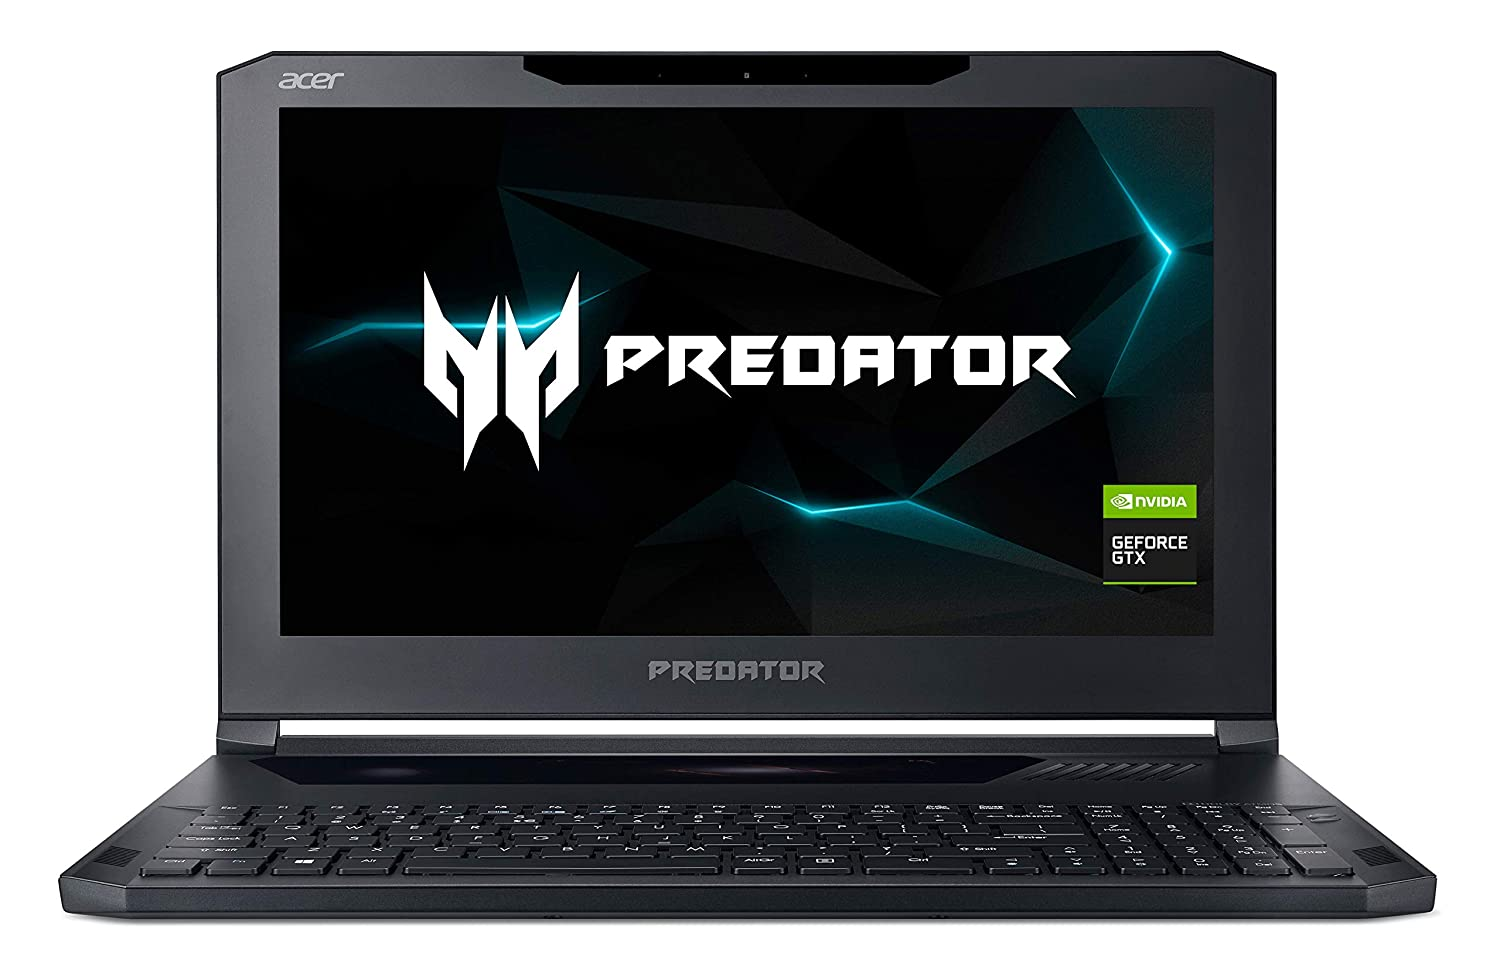 Acer Predator Triton 700 Gaming Laptop, Intel Core i7, GeForce GTX 1060, 15.6 Full HD, 16GB DDR4, 512GB SSD, PT715-51-761M